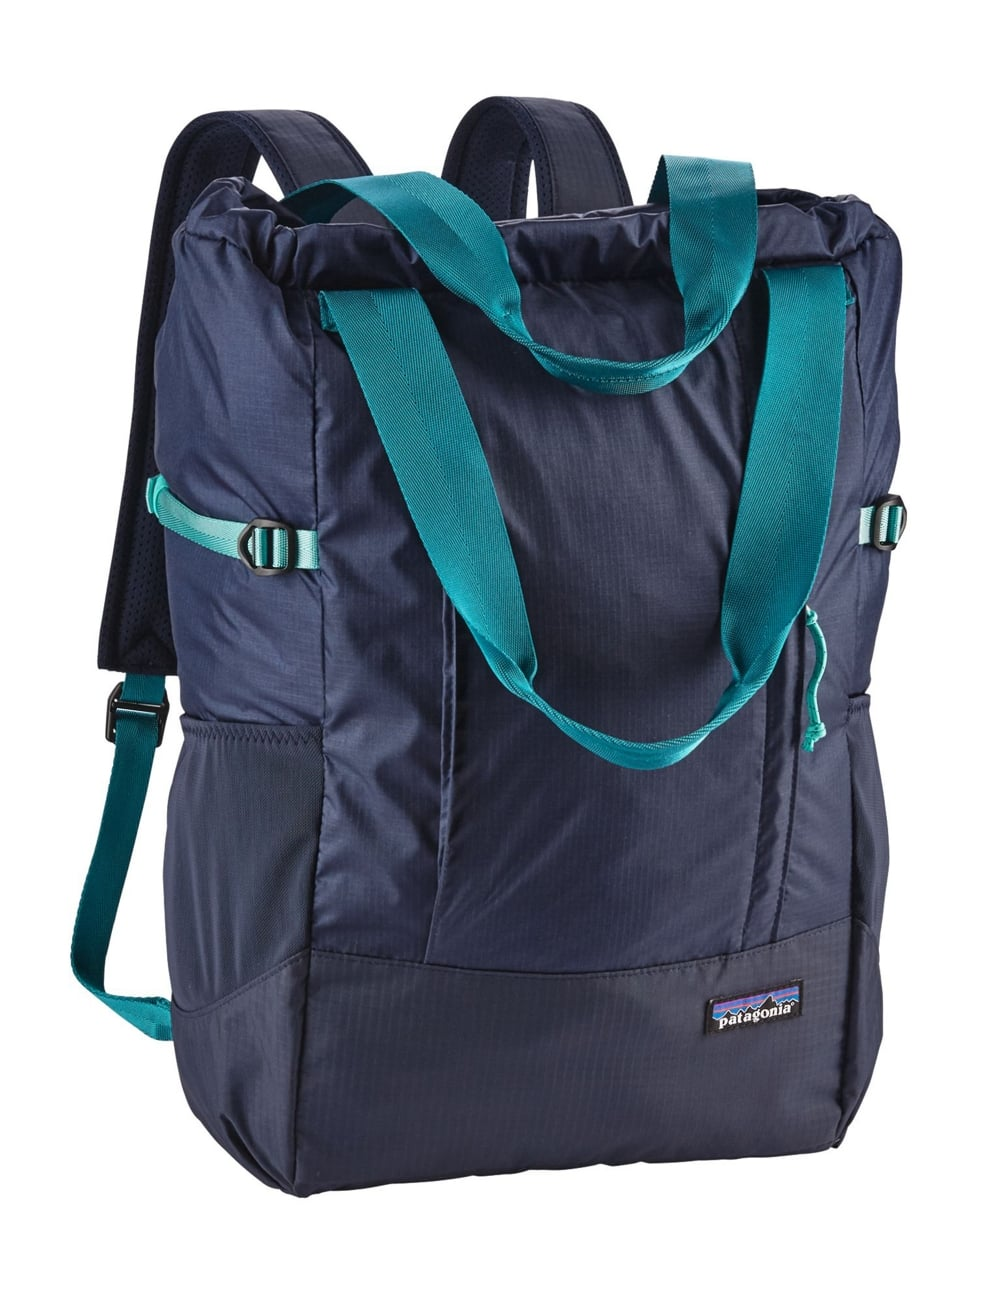 Patagonia Lightweight Travel Tote Bag - Navy Blue - Accessories from ... c9a23e7aa4d4d